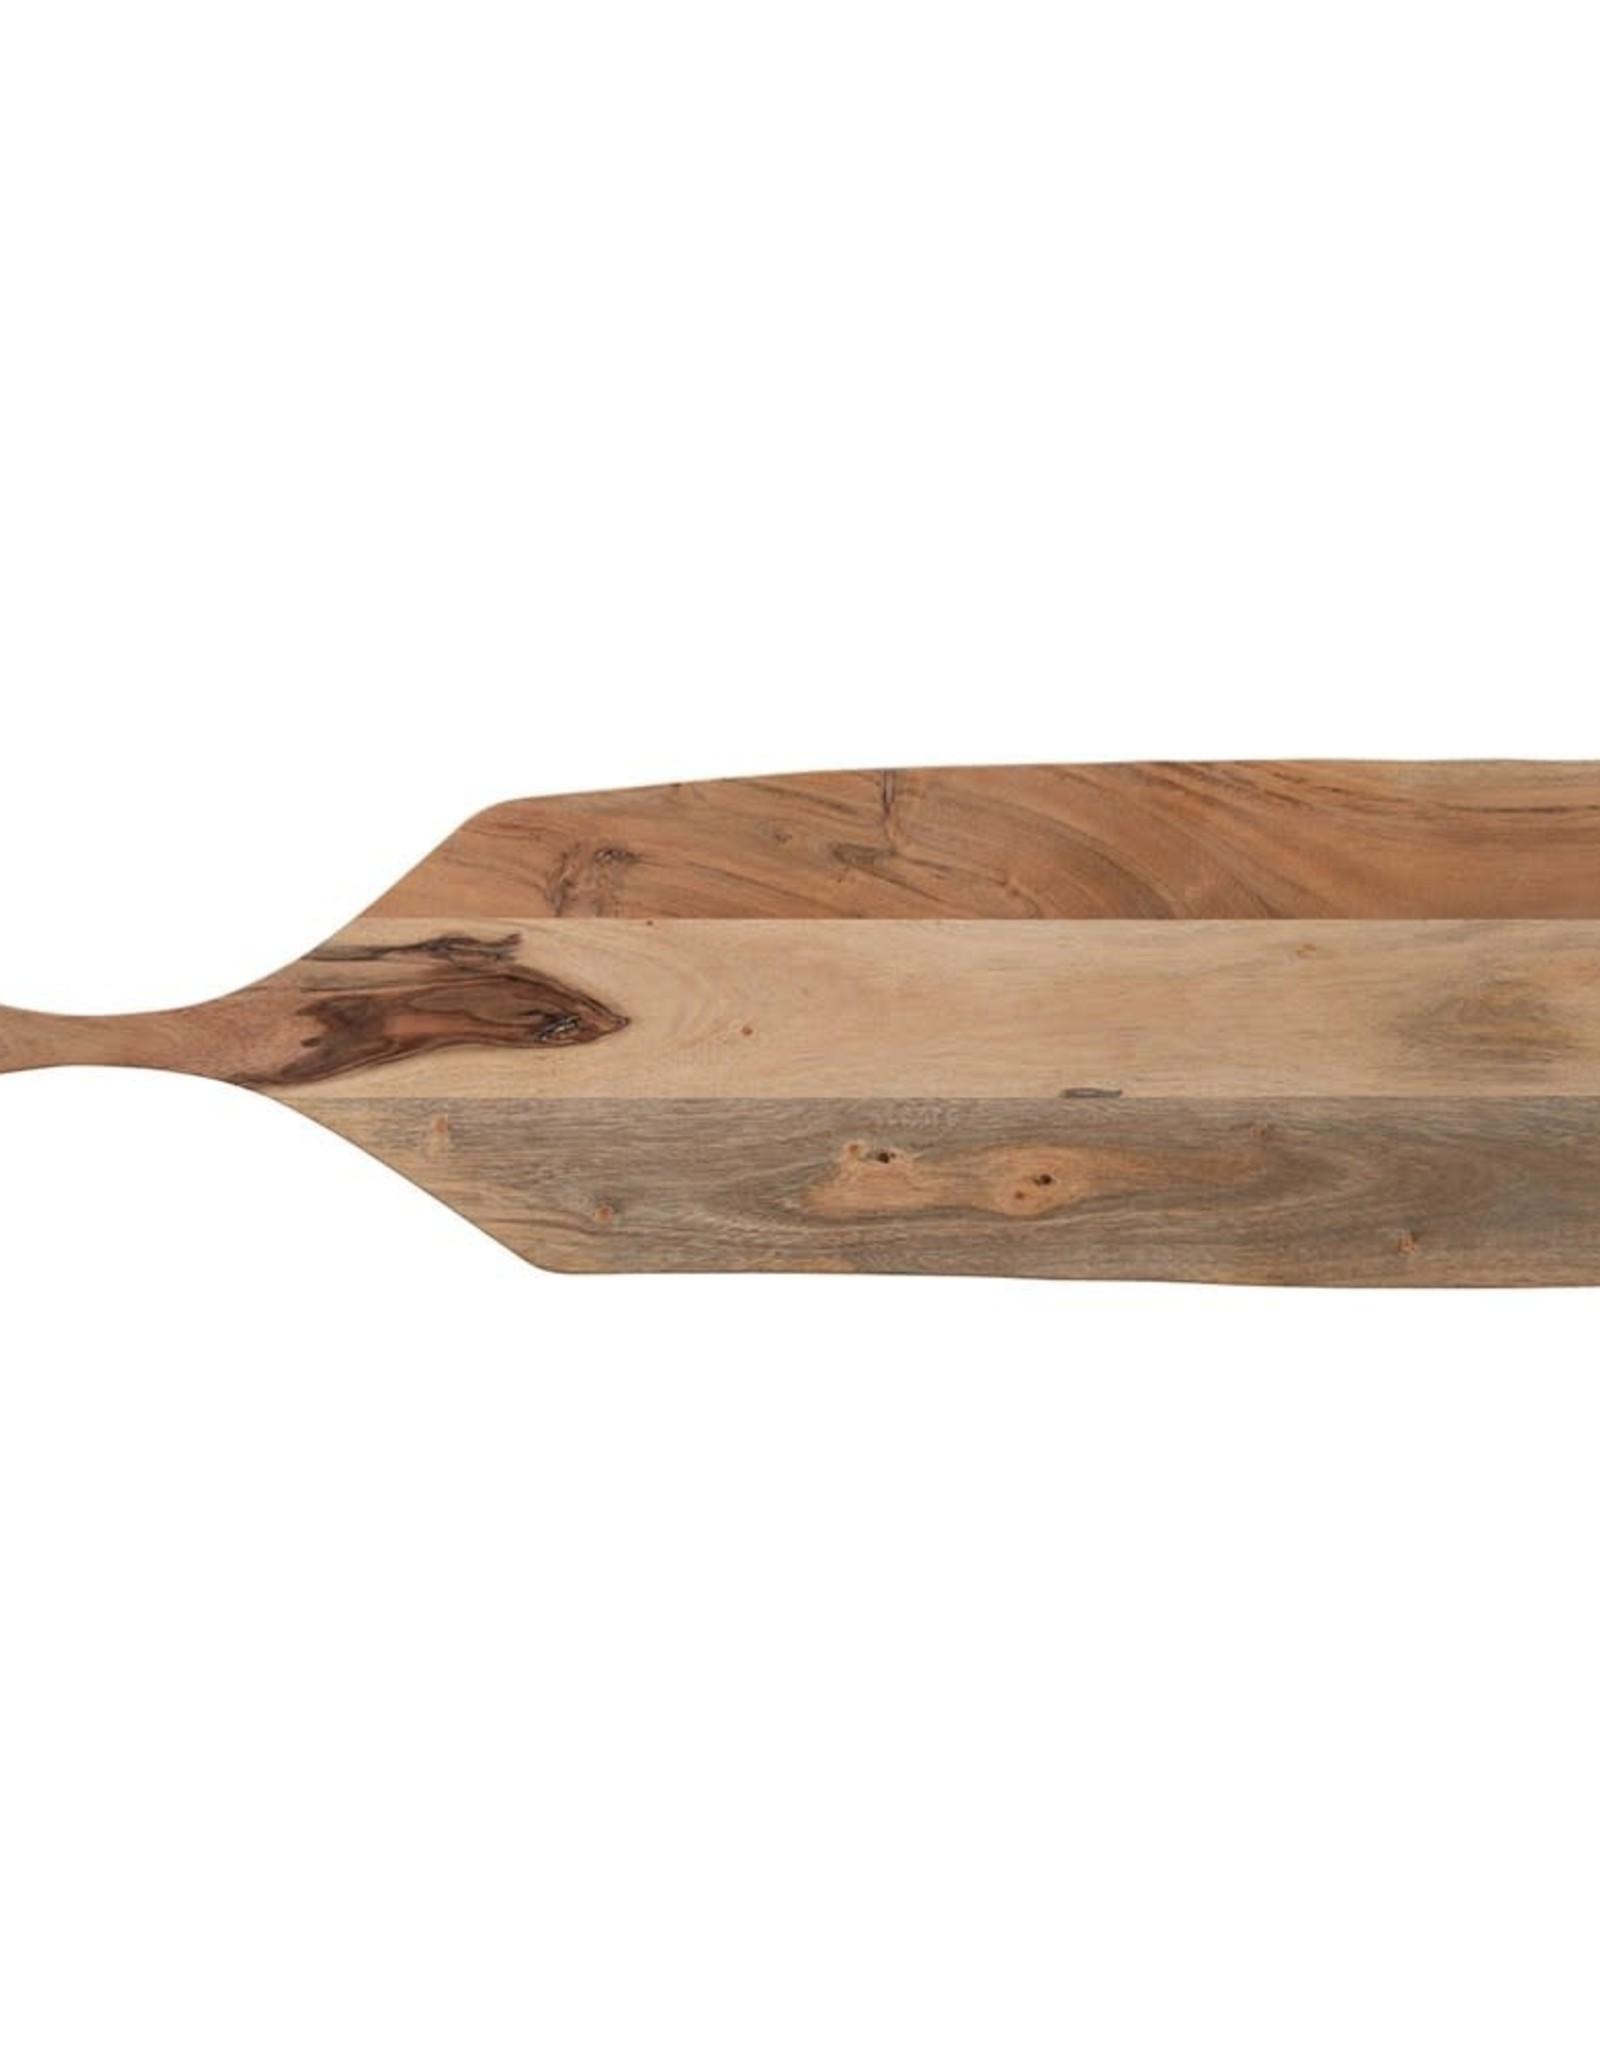 BOARD CUTTING SERVING RECTANGLE ACACIA WOOD WITH HANDLE 32 INCH